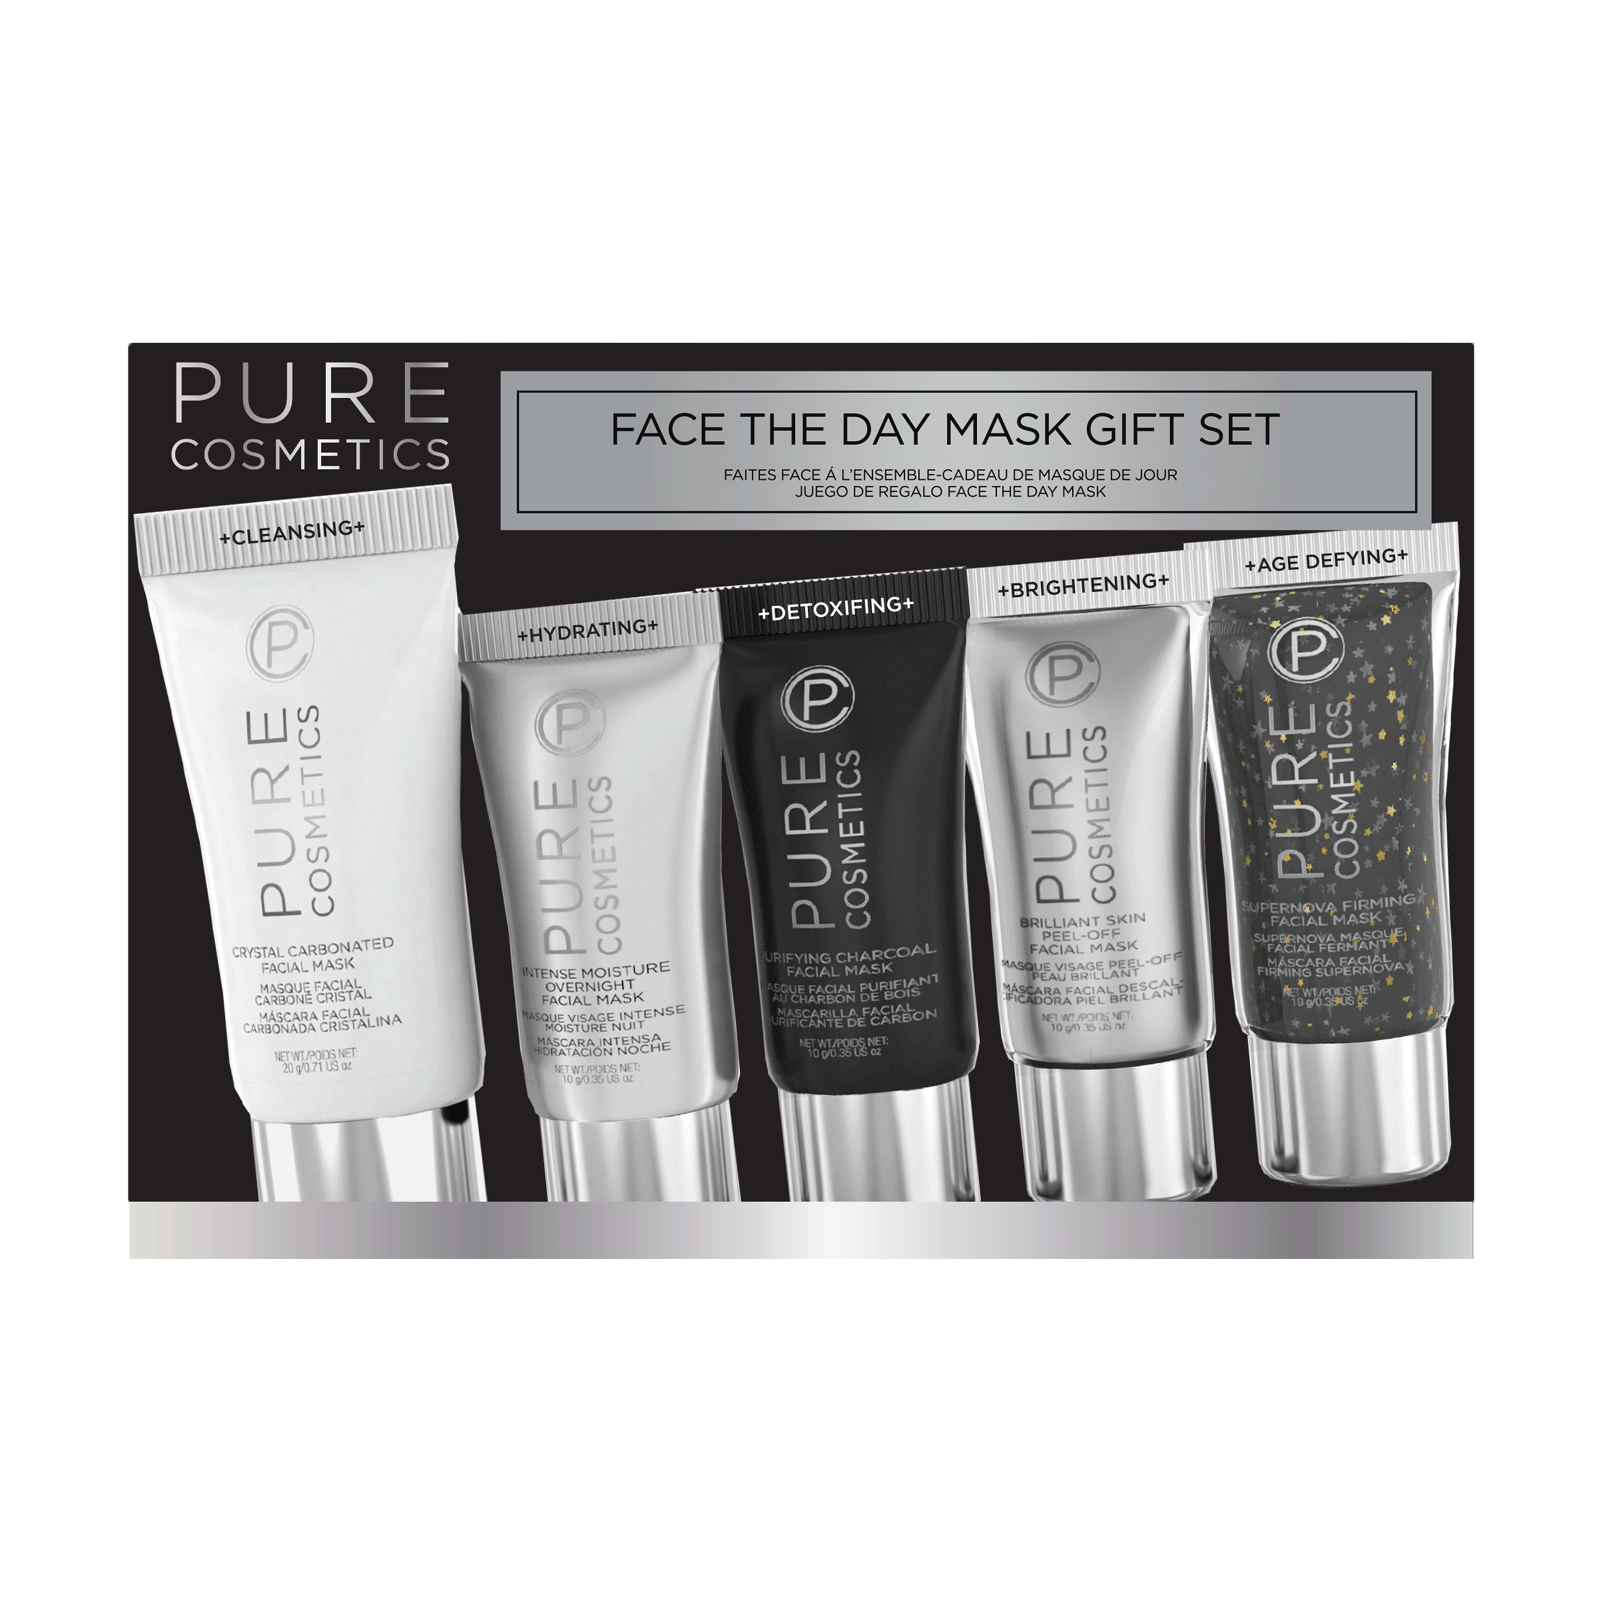 Face The Day Mask Gift Set